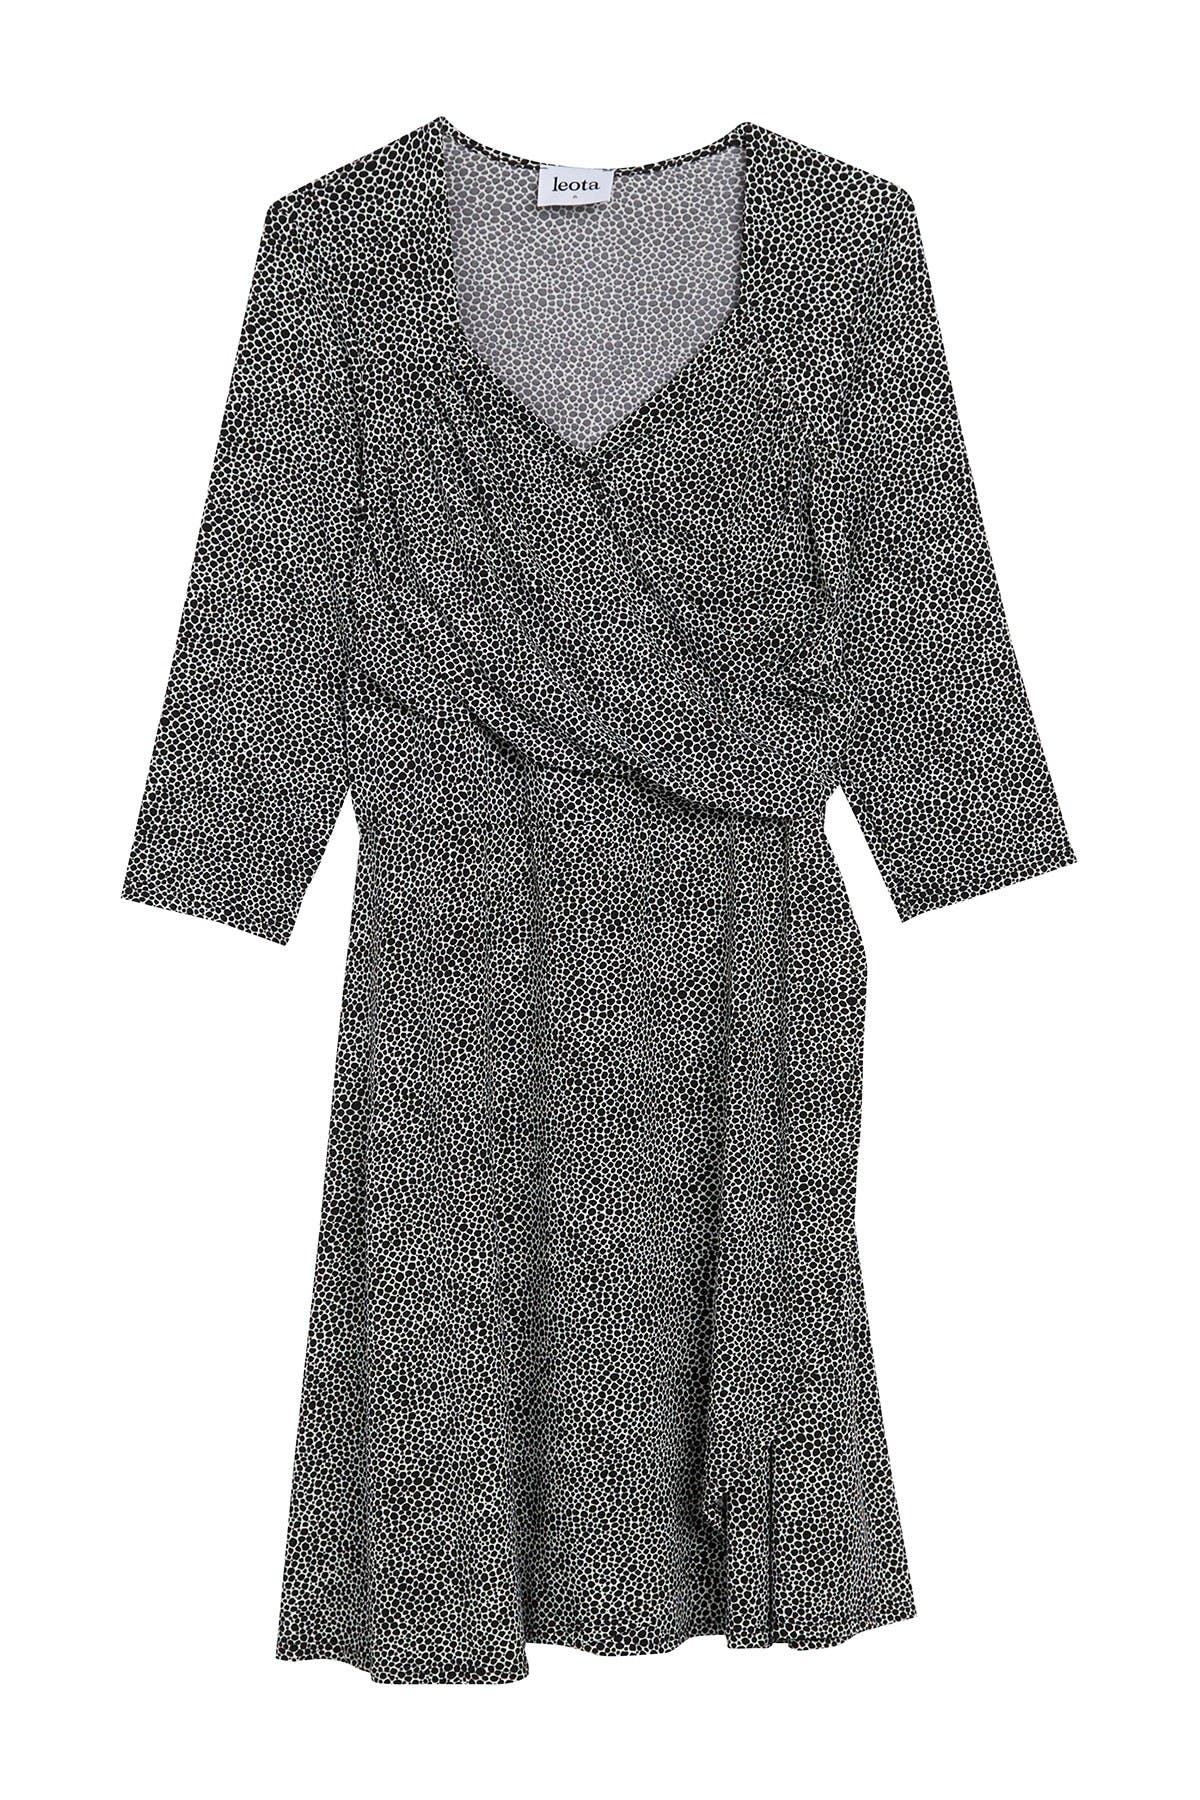 Image of Leota 3/4 Sleeve Sweetheart Mock Wrap Dress